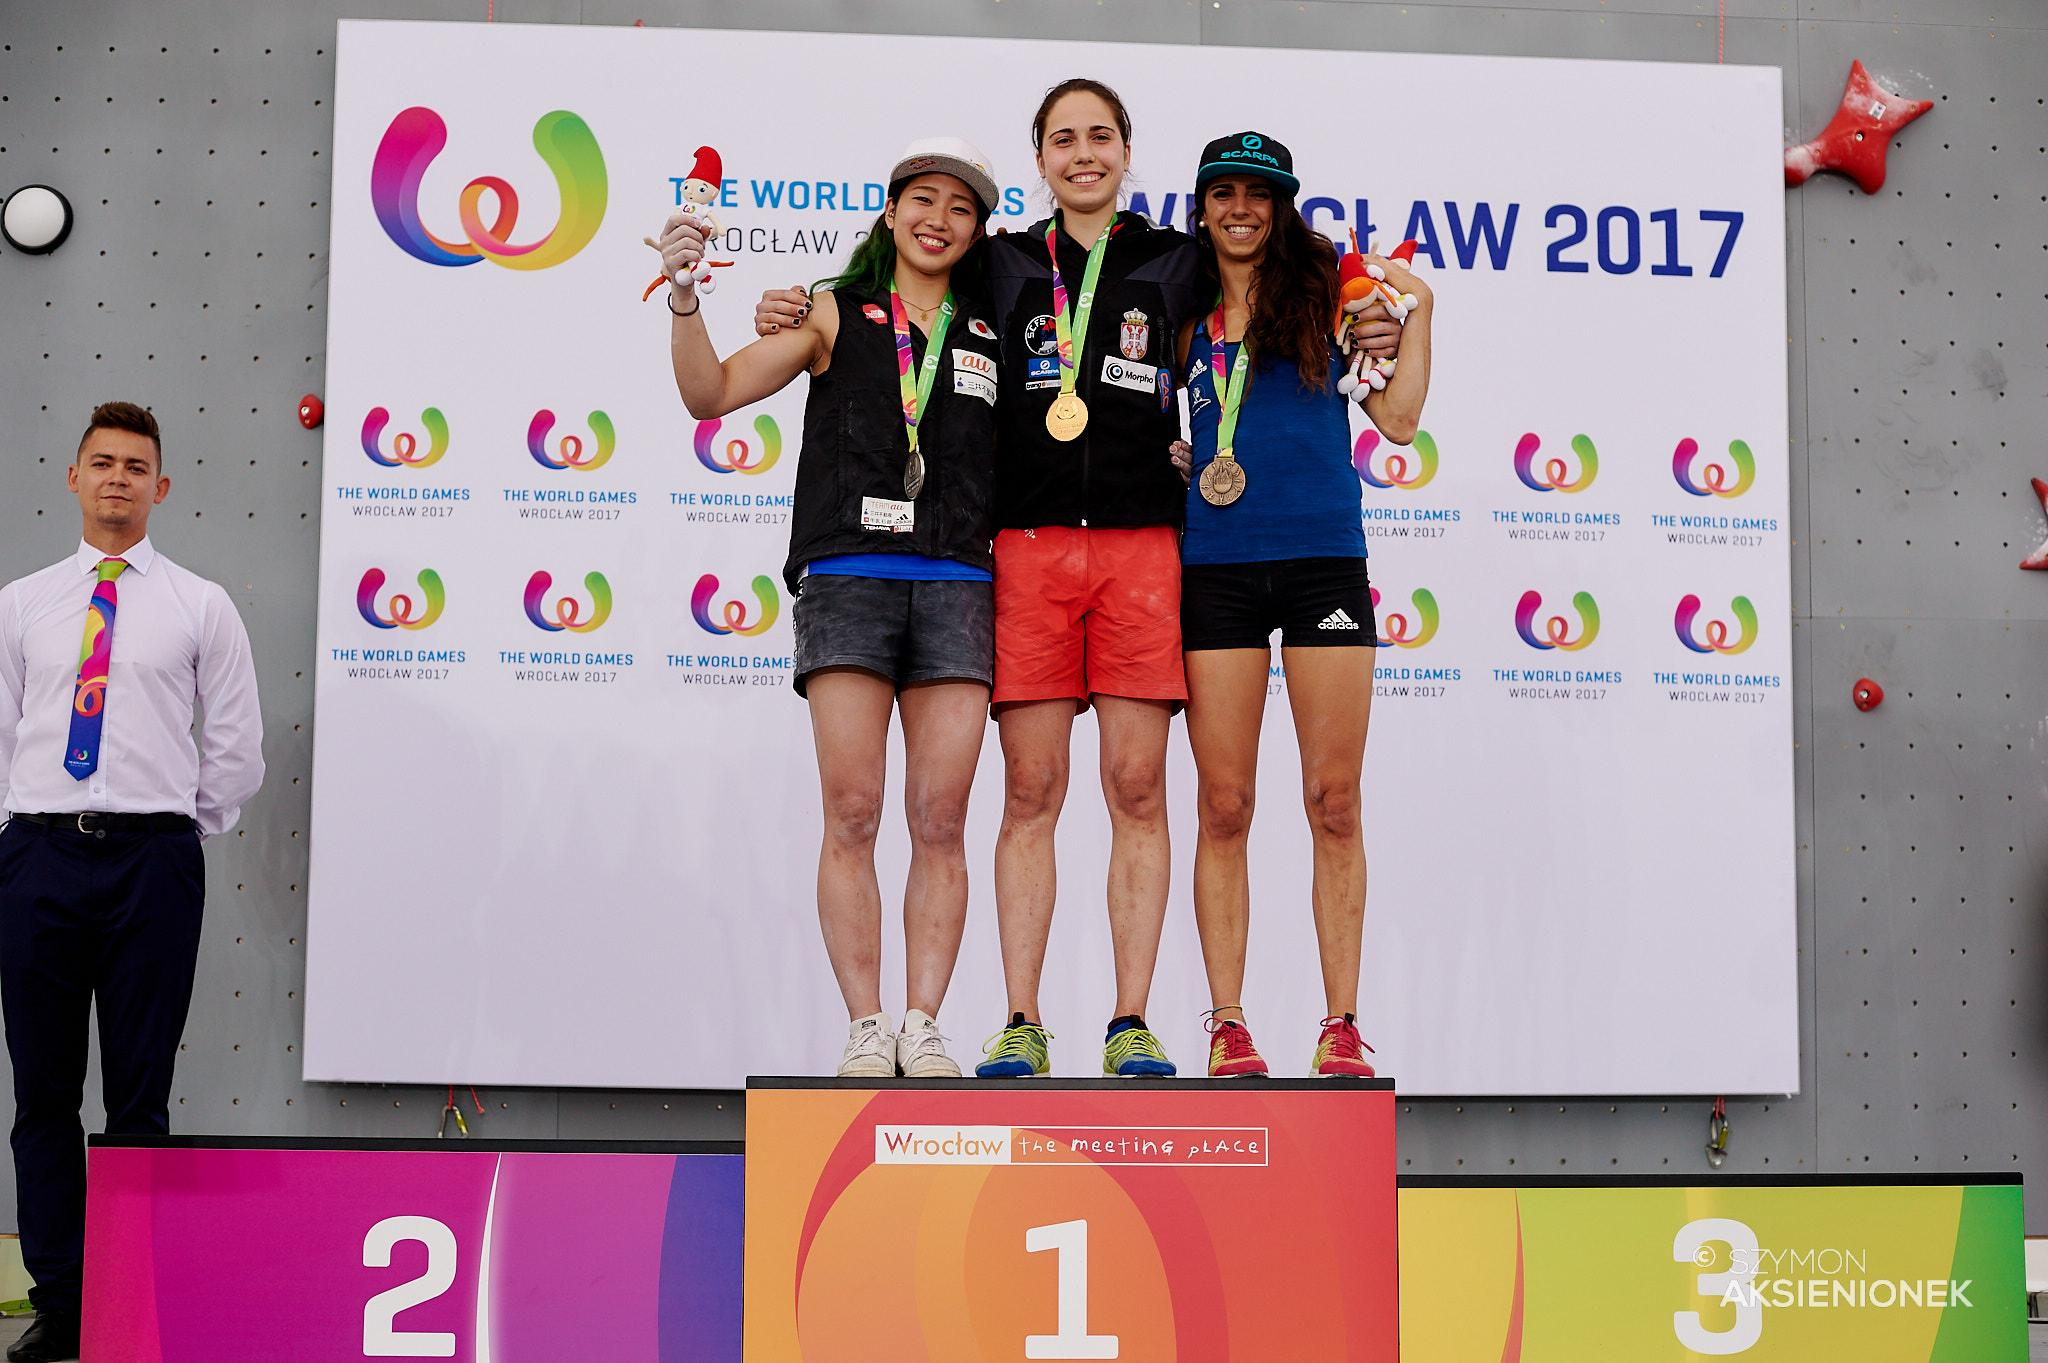 The Women's Bouldering podium at The Wroclaw 2017 World Games